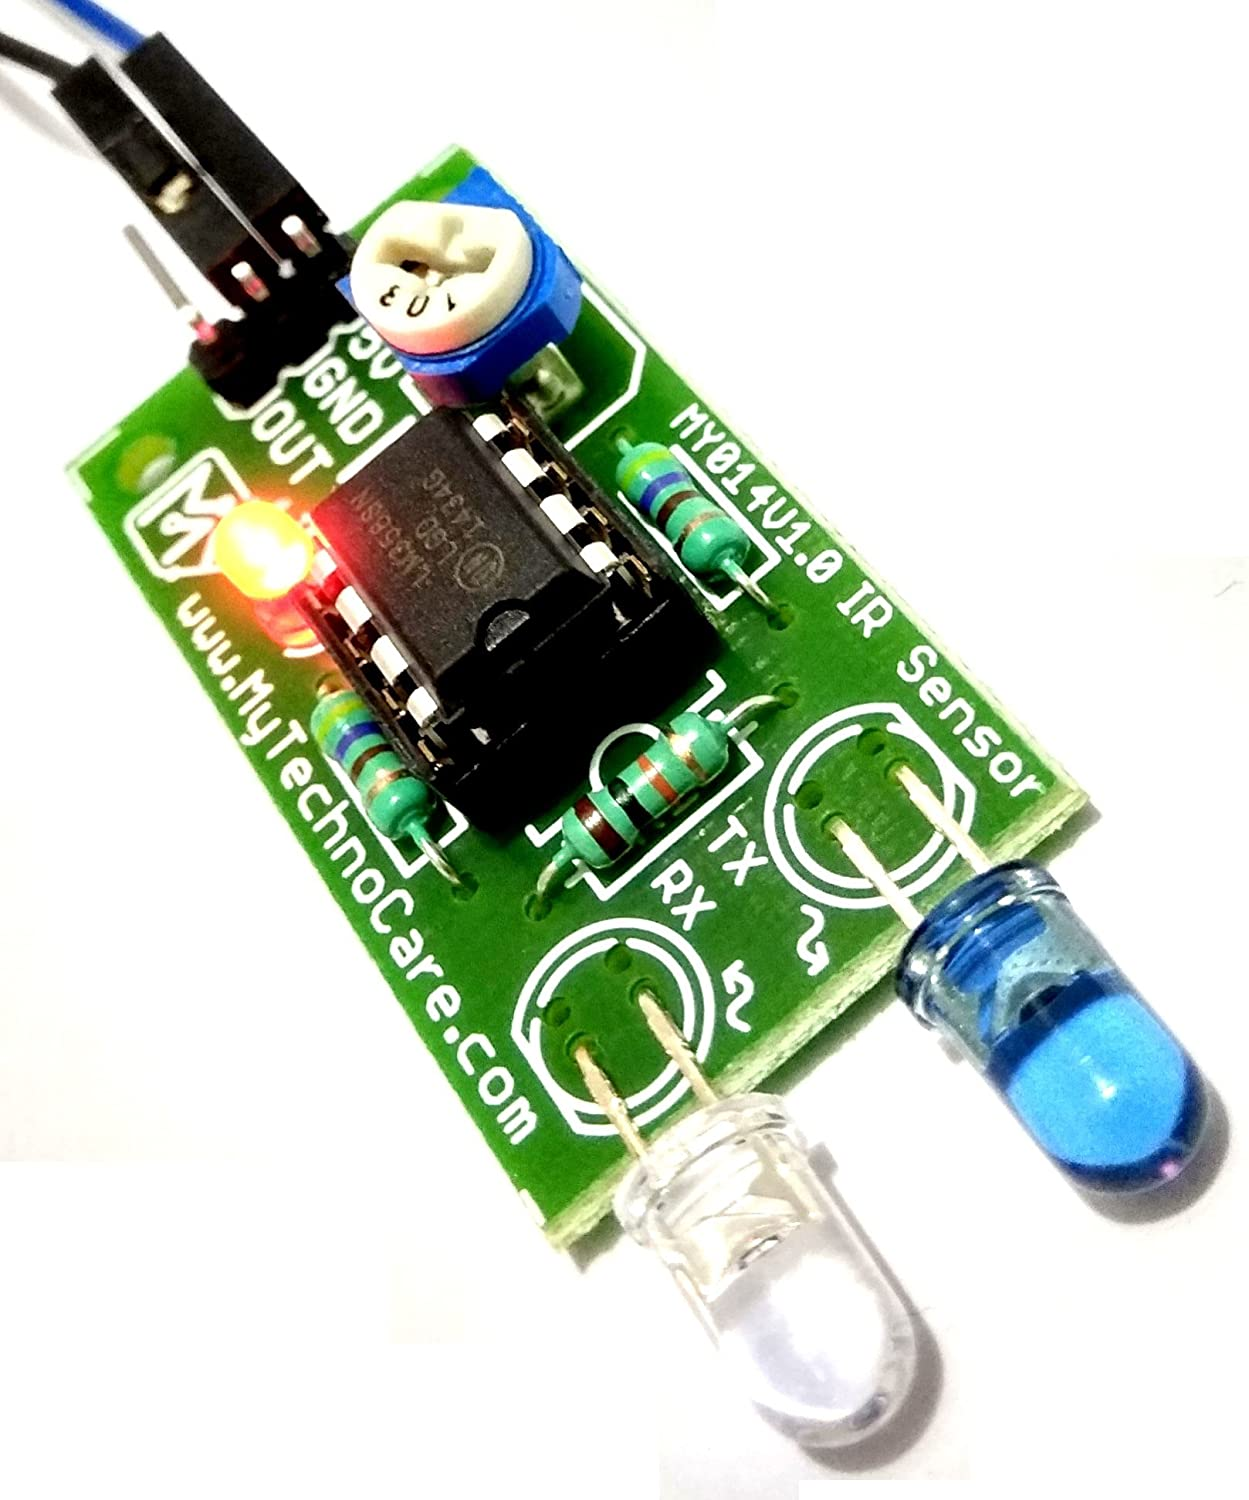 My Technocare Ir Sensor Infrared Proximity How To Make Robot 8051 Micro Controller Based Line Follower Obstacle Avoidance Detecting Following For Arduino Avr Pic Arm Microcontroller Electronics Project